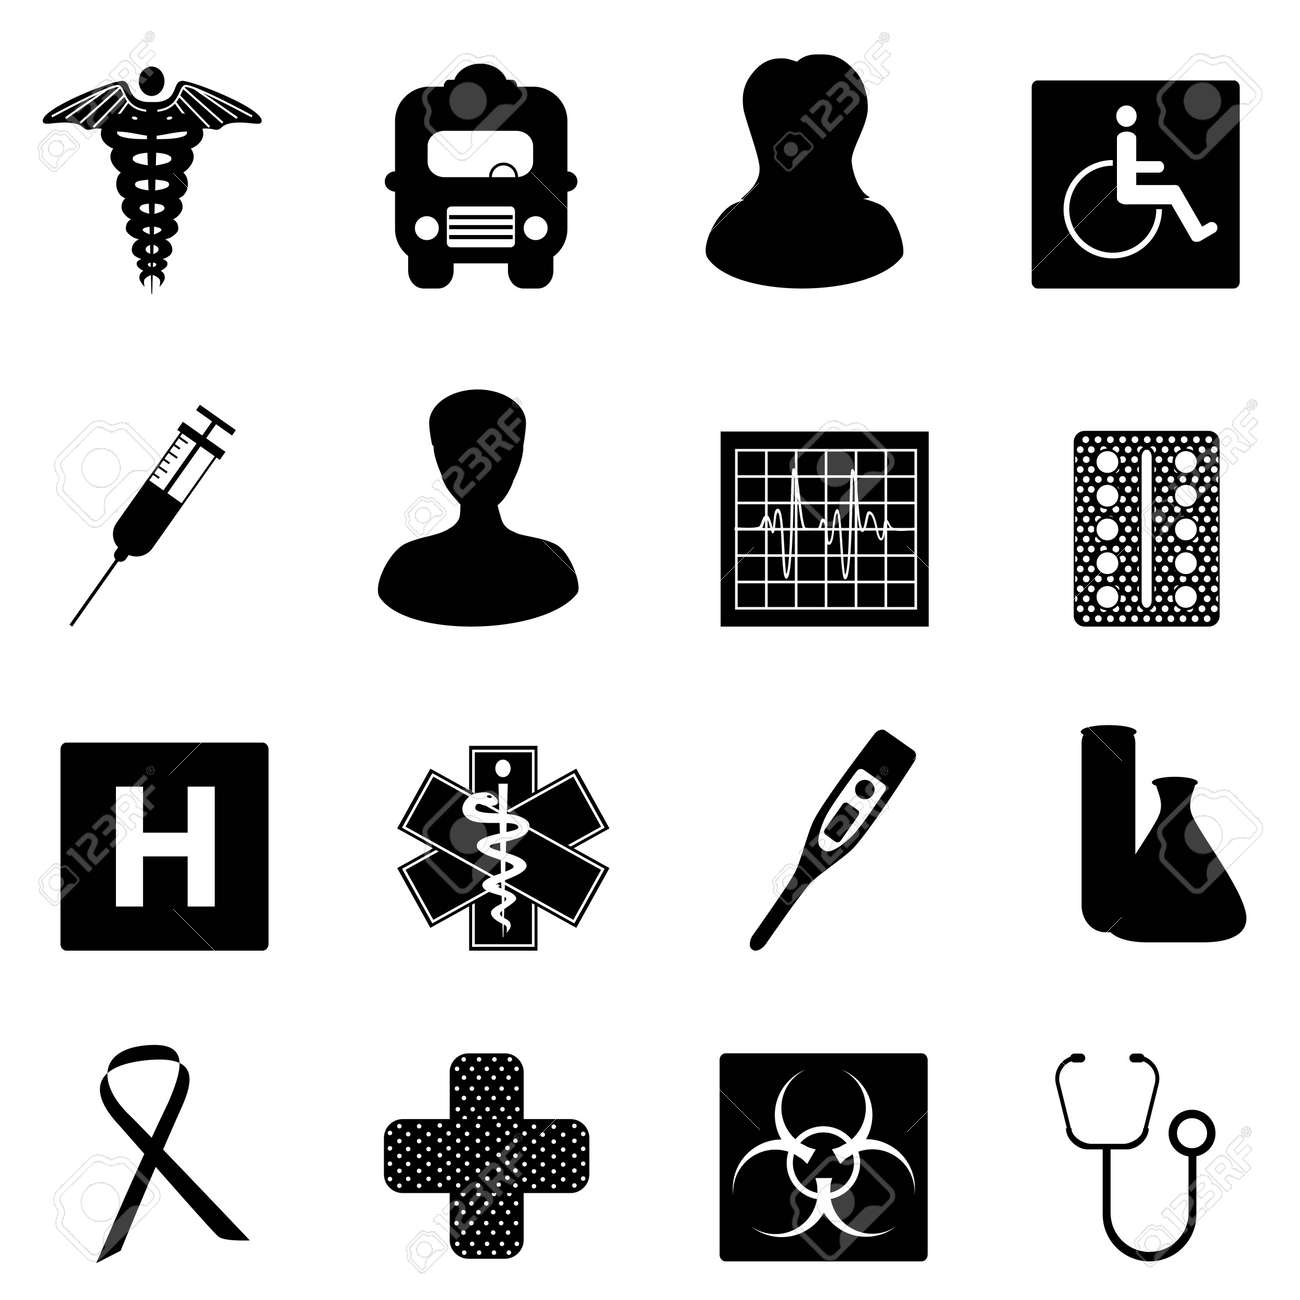 Symbols related to medicine and healthcare Stock Vector - 9330397